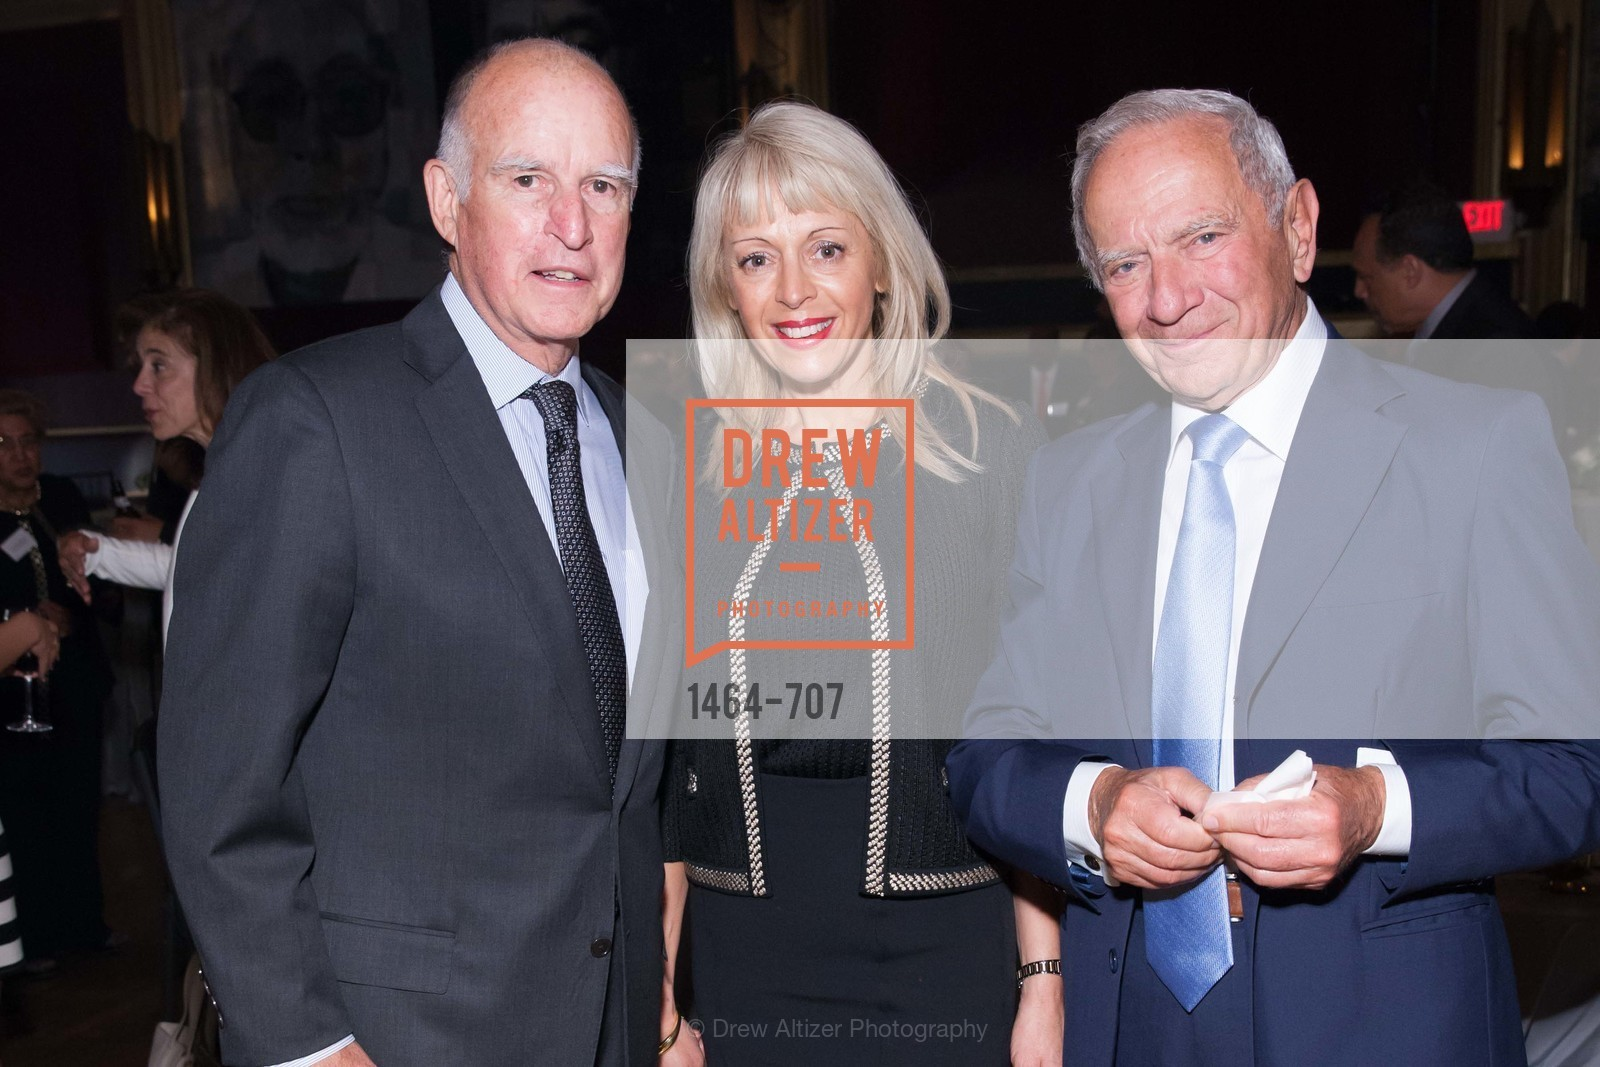 Gov. Jerry Brown, Alexandra Novak, Milan Panic, OAKLAND SCHOOL FOR THE ARTS Gala 2015 with Governor Jerry Brown, US, May 8th, 2015,Drew Altizer, Drew Altizer Photography, full-service agency, private events, San Francisco photographer, photographer california